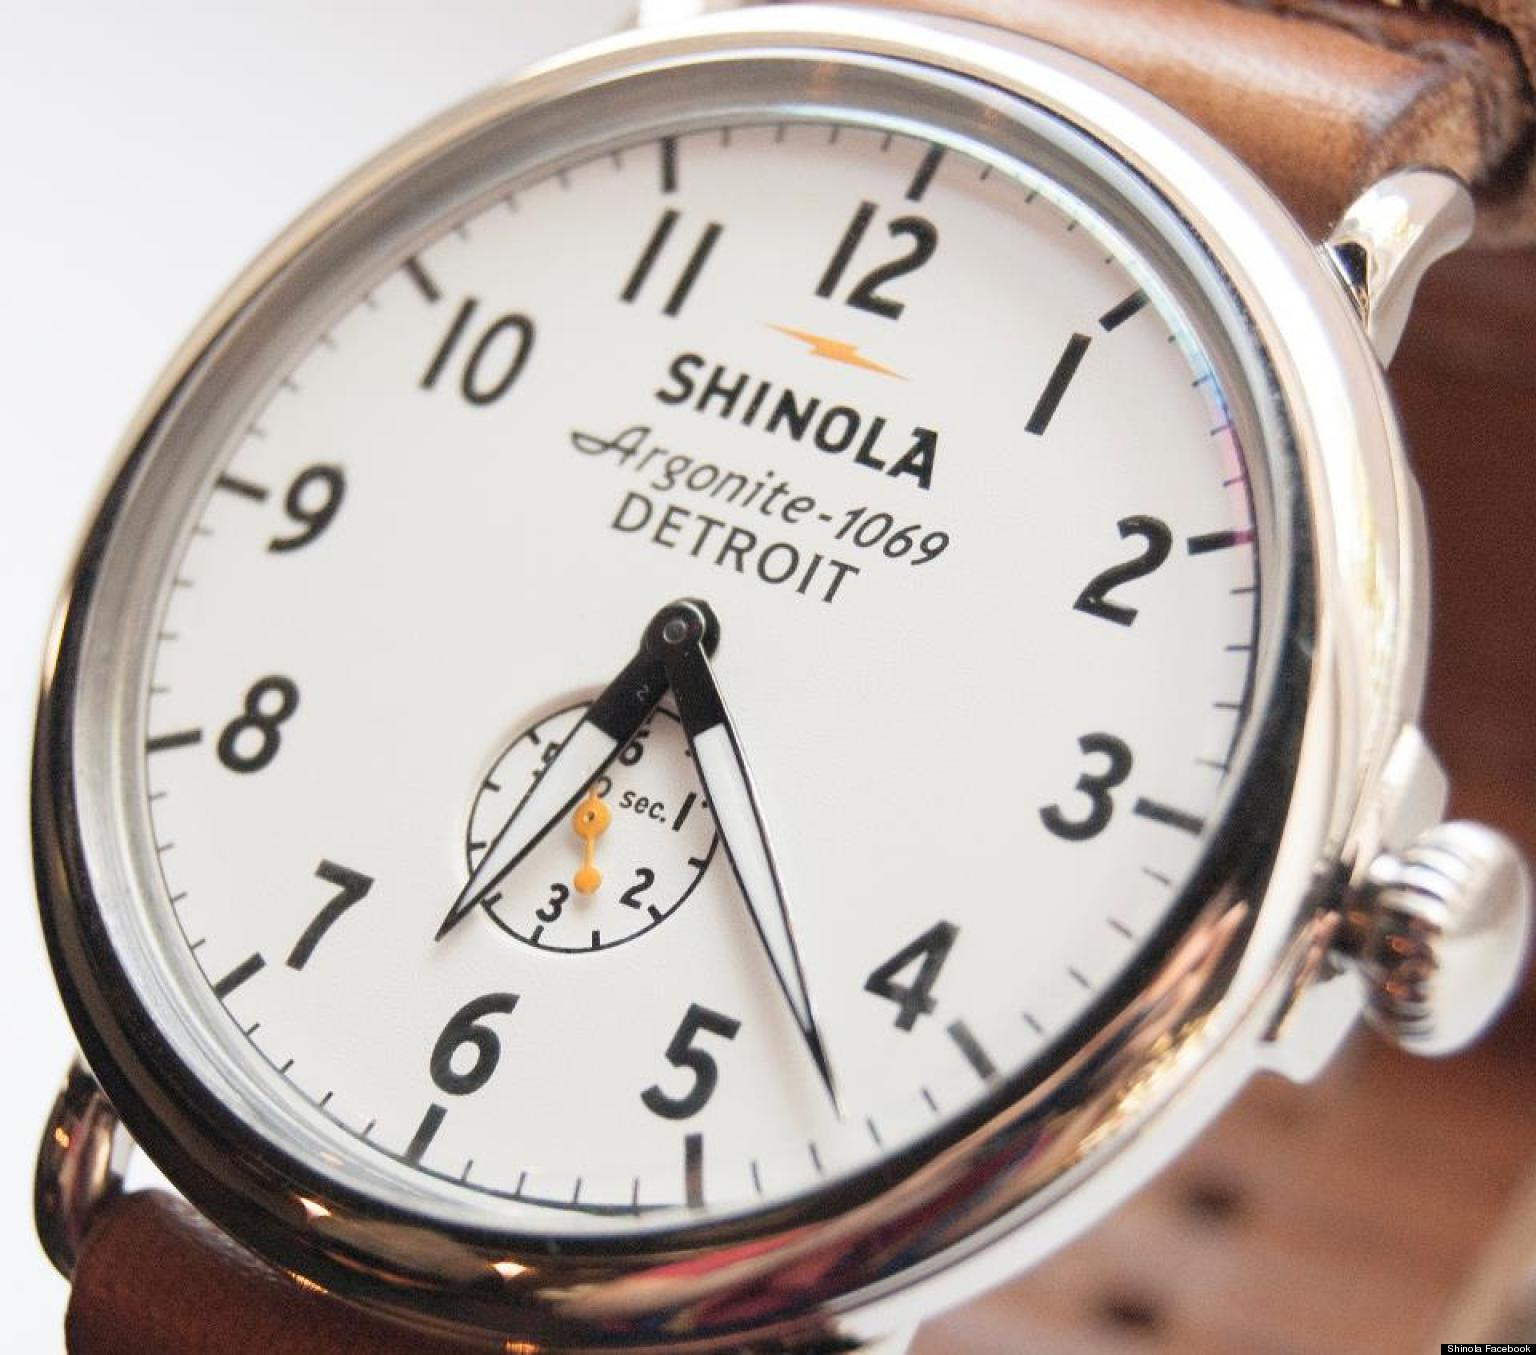 Watches - Page 3 O-SHINOLA-DETROIT-WATCHES-BIKES-facebook